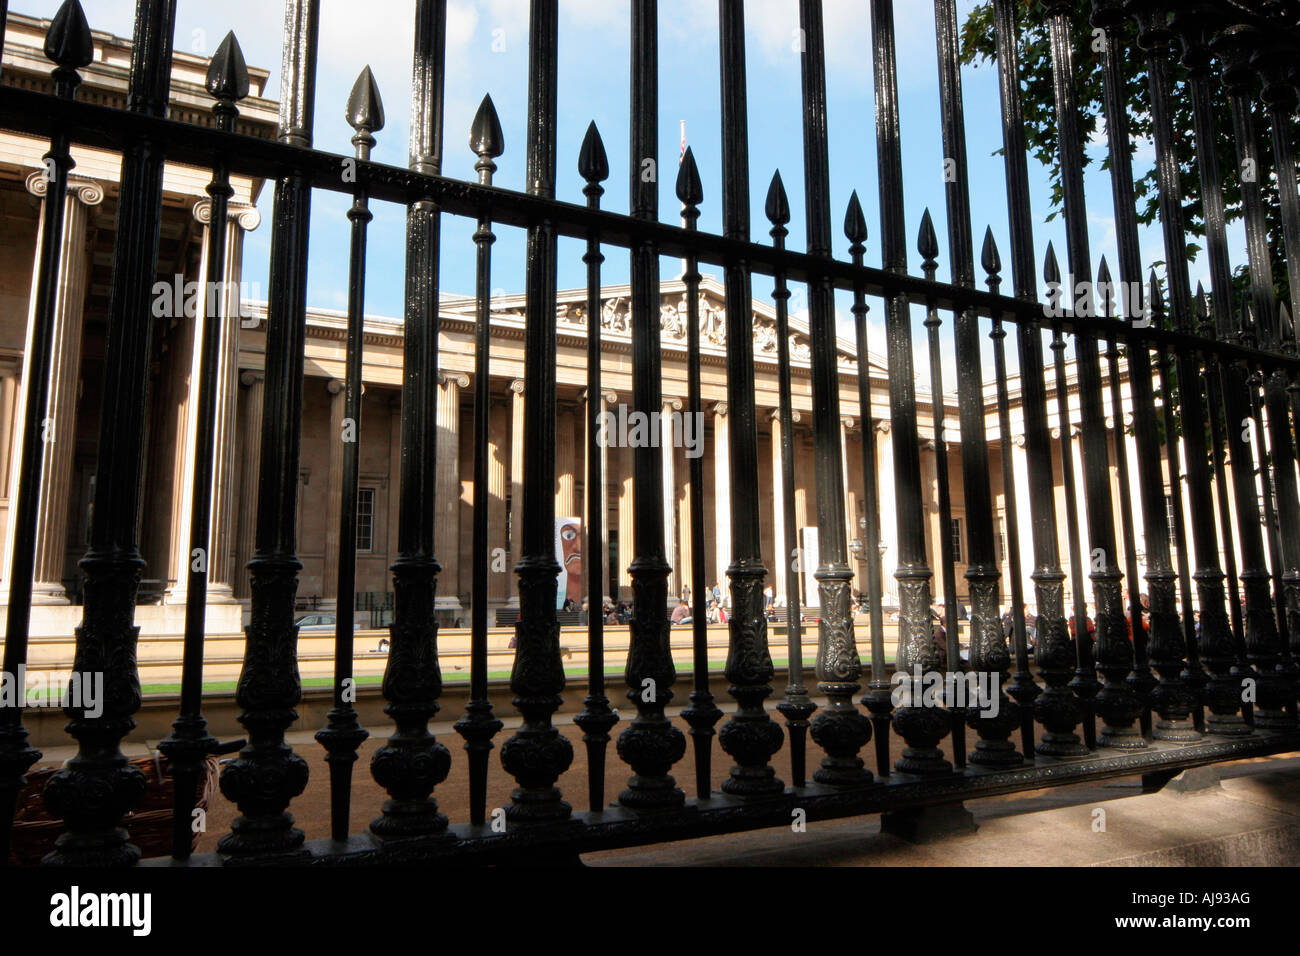 The British Museum, protected by iron railings outside the main entrance Stock Photo